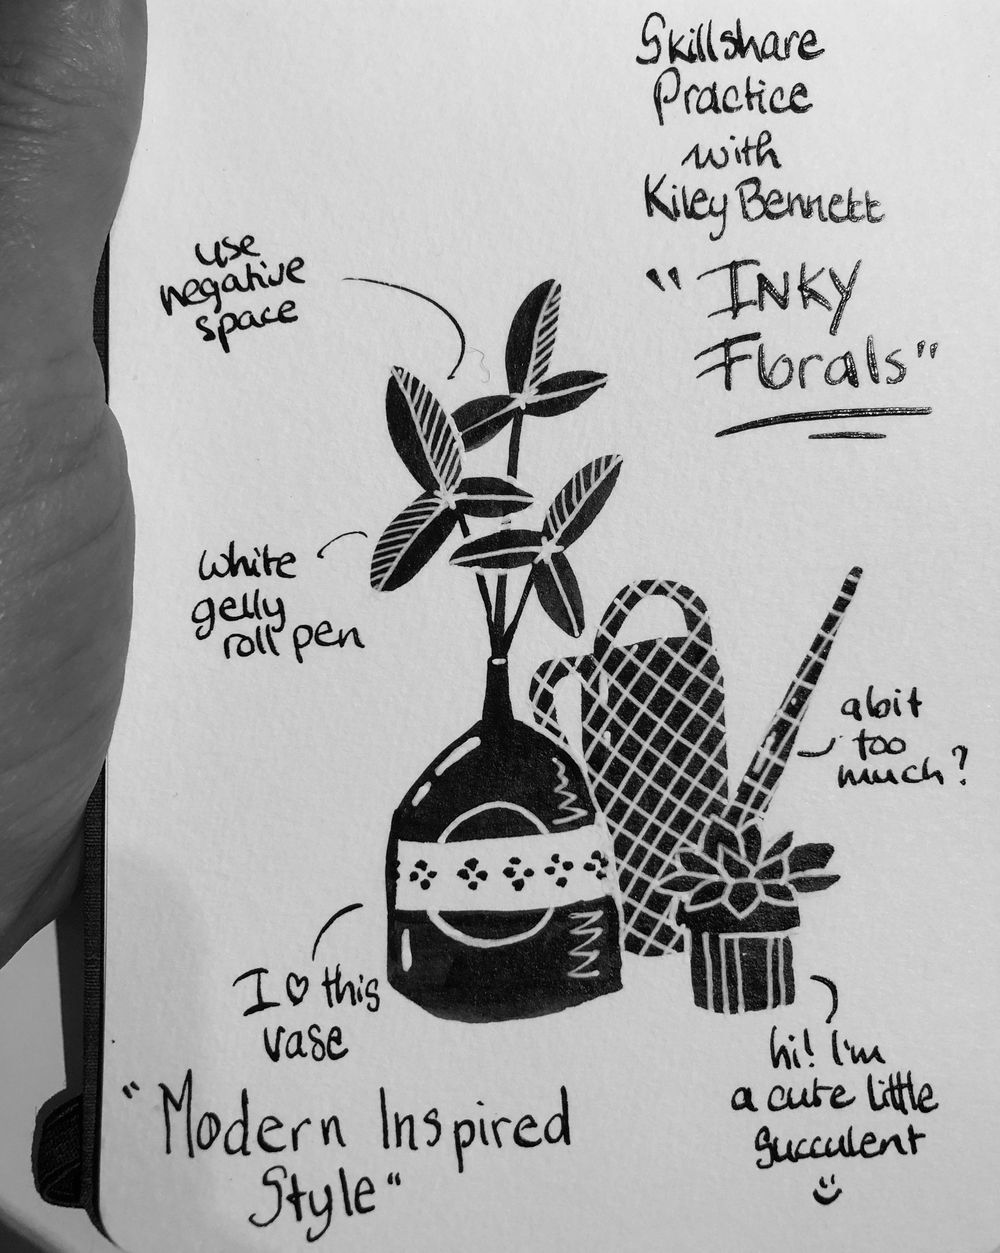 Inky doodles - image 2 - student project